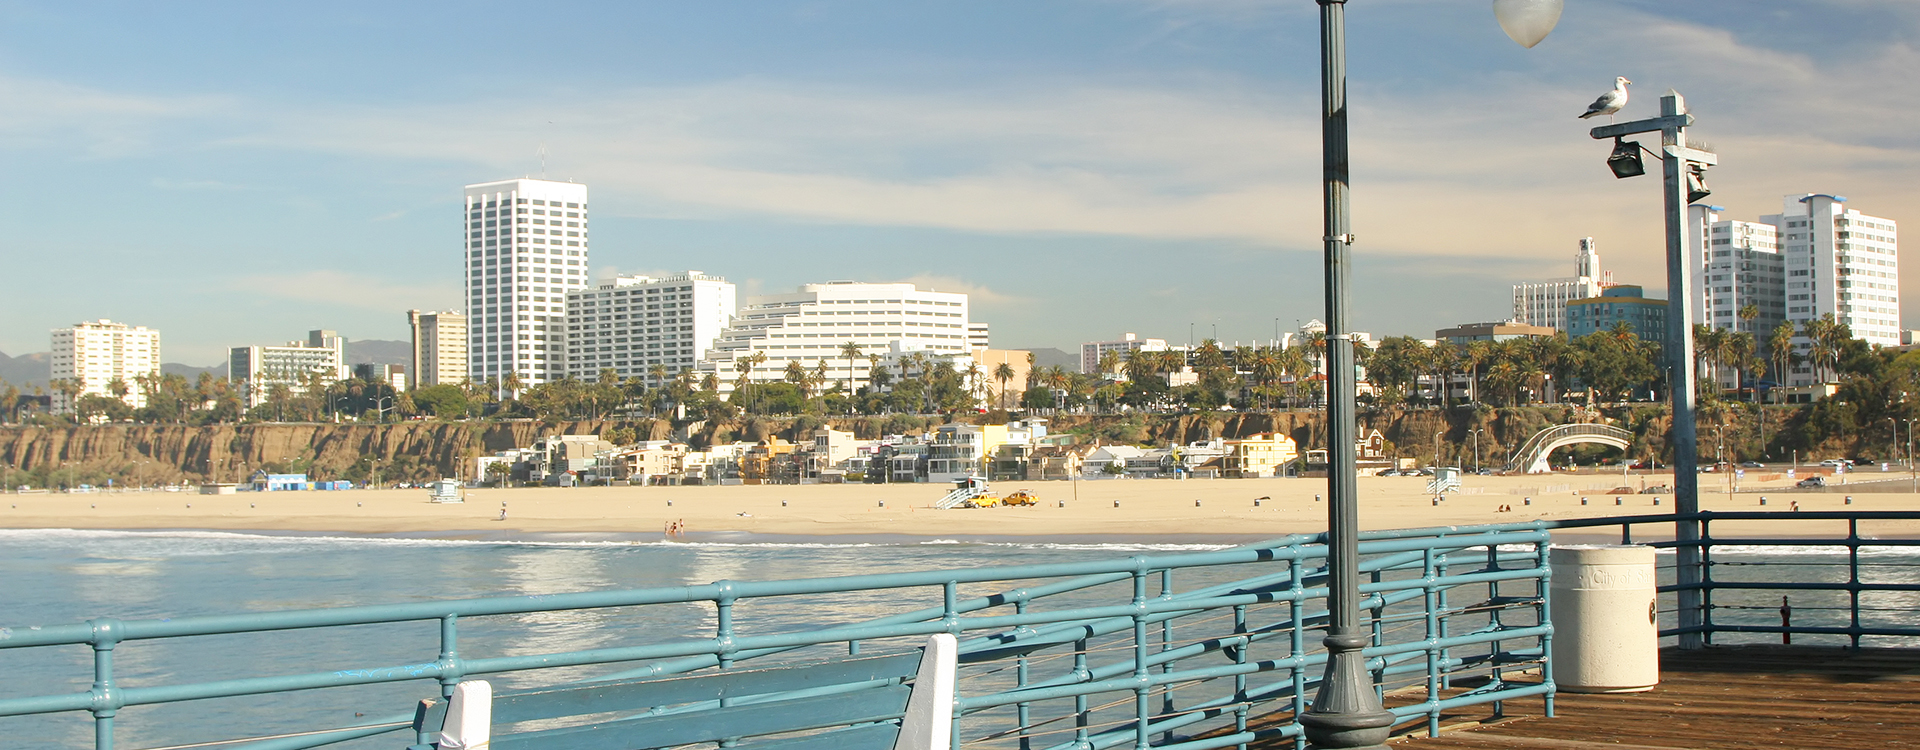 Pacific Plaza apartments view from Santa Monica Pier